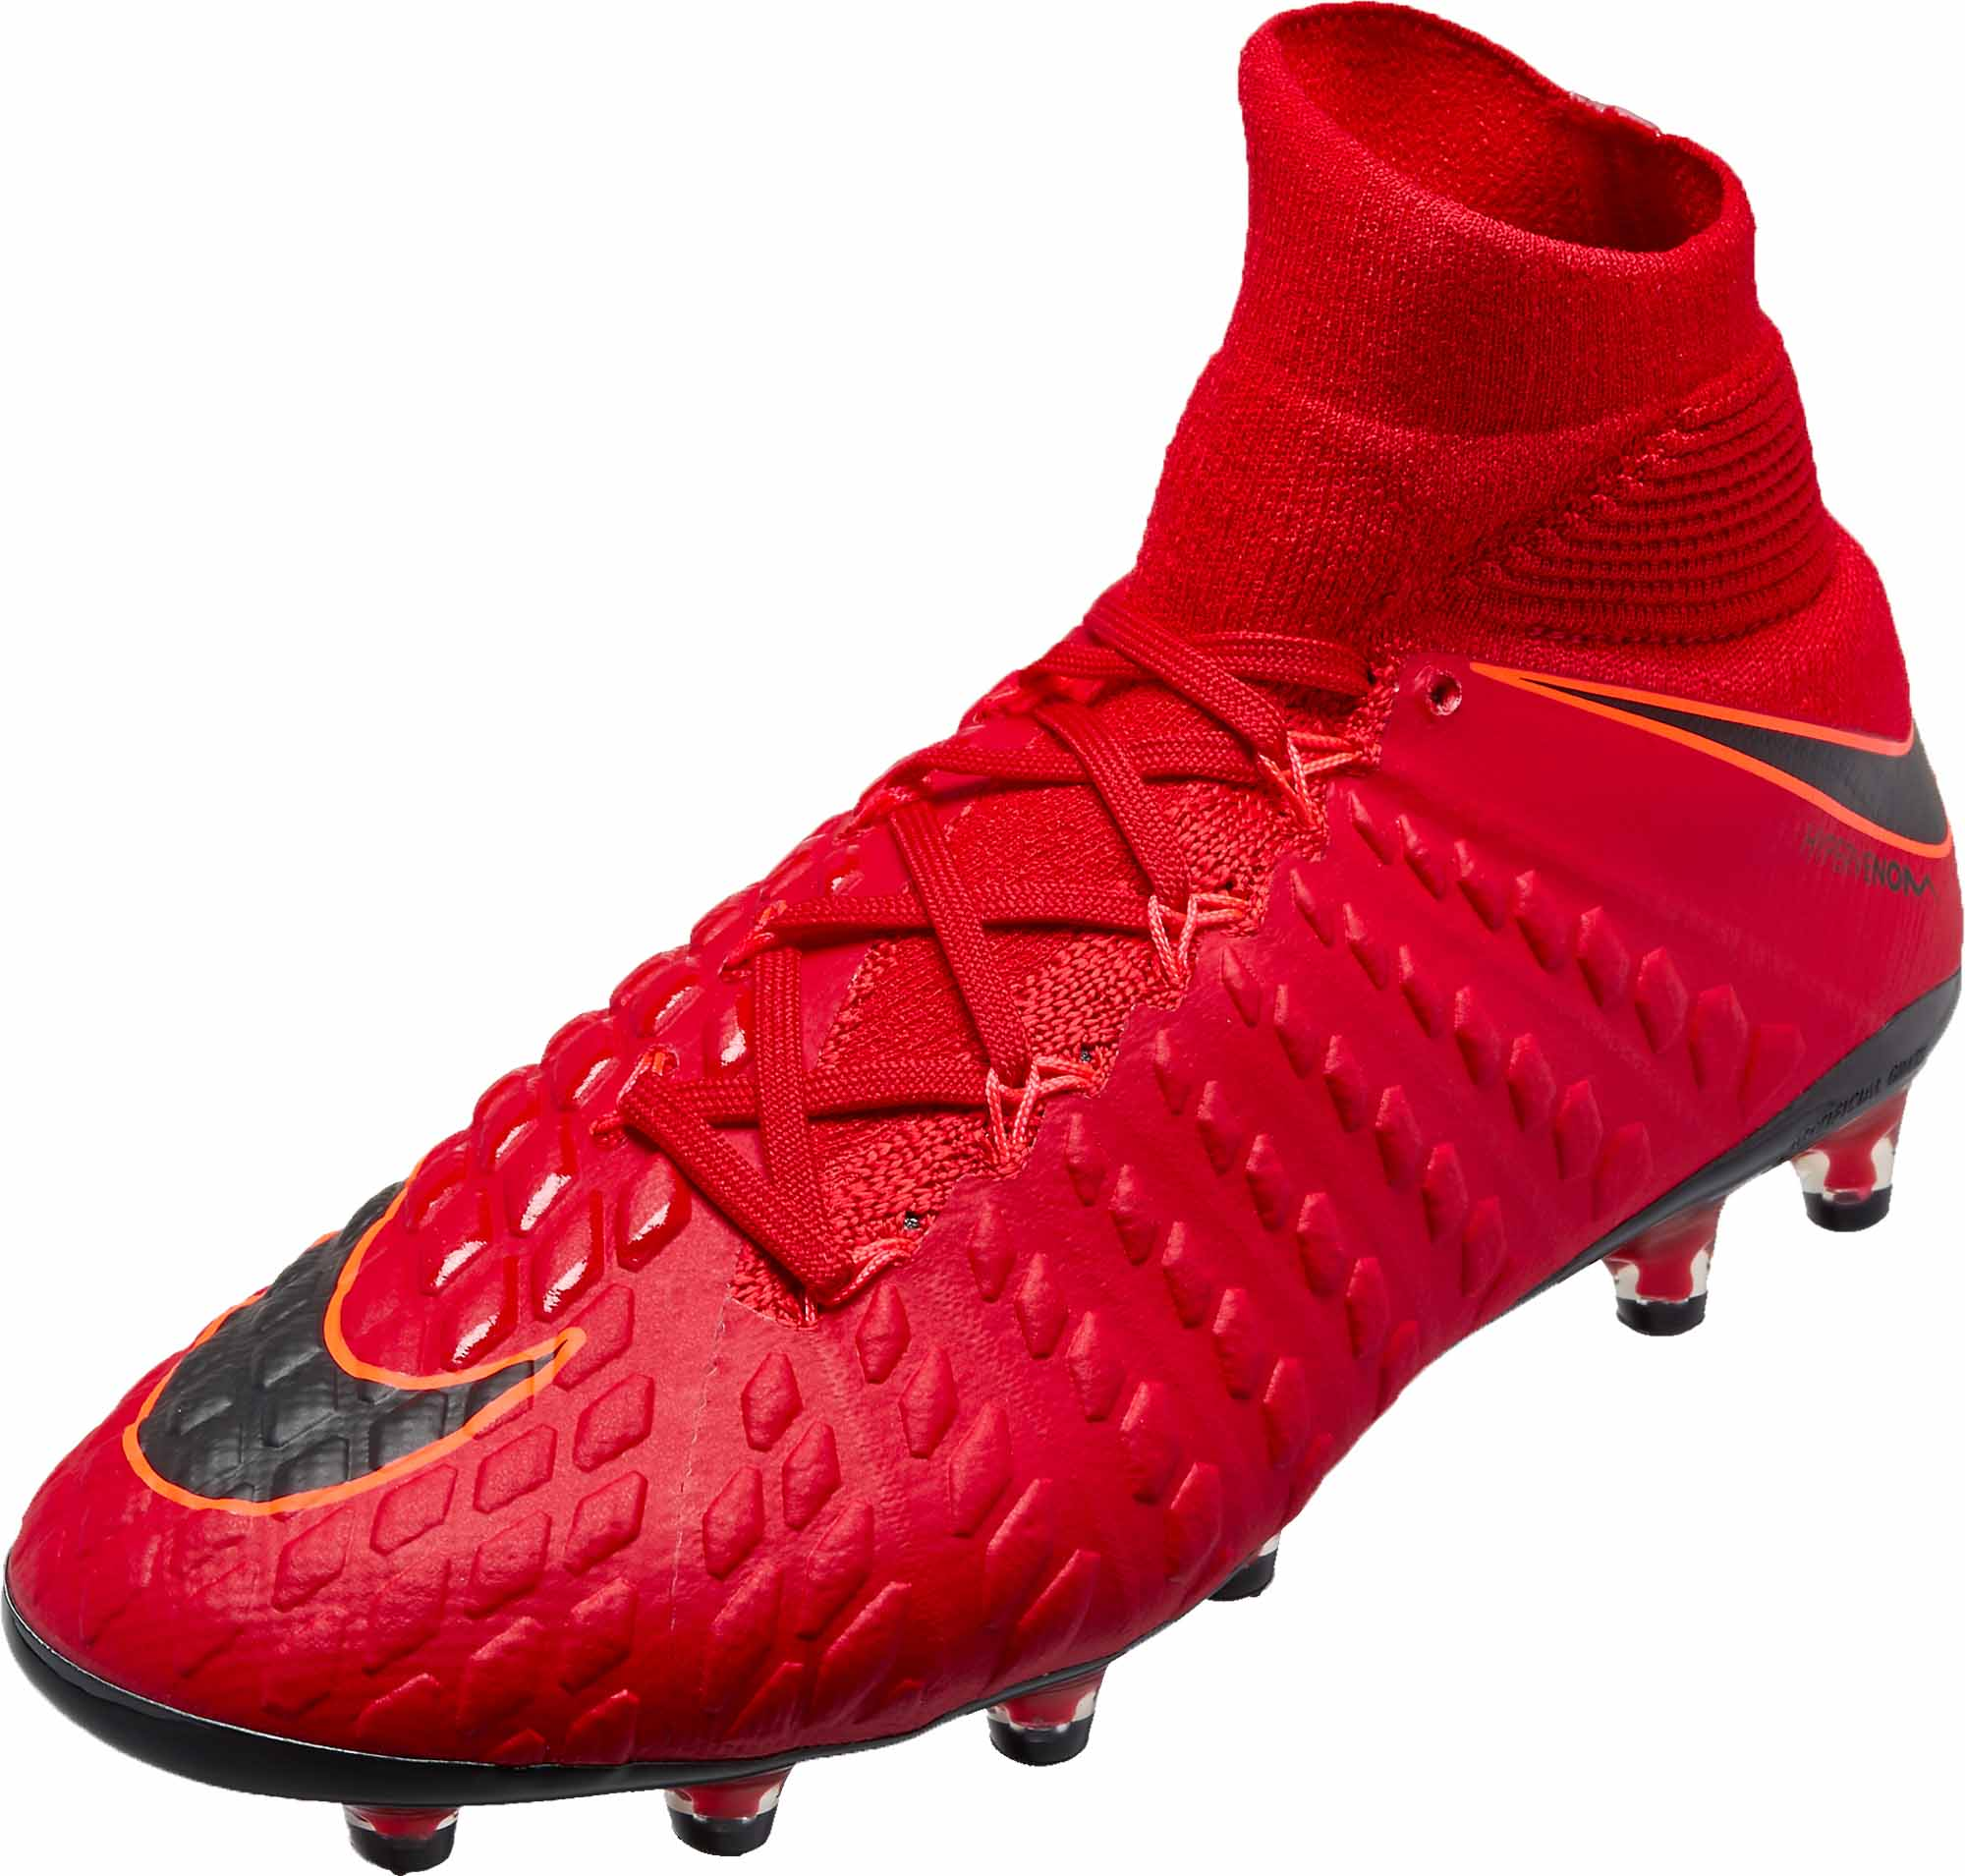 c6fc7befa4f8 Nike Hypervenom Phantom III DF AG-Pro - University Red   Black ...